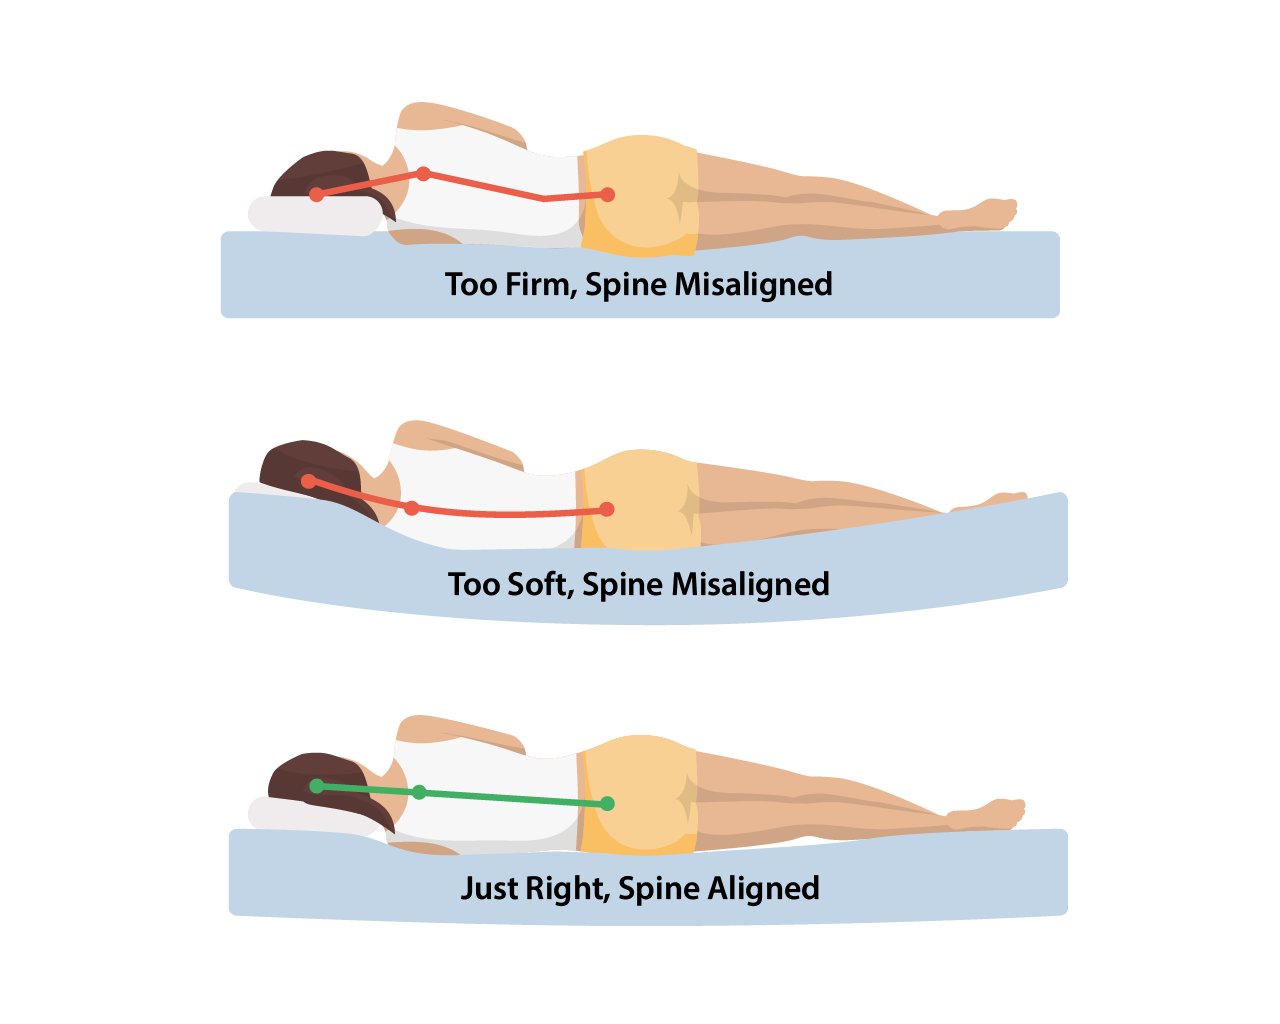 Diagram comparing spinal alignment and misalignment